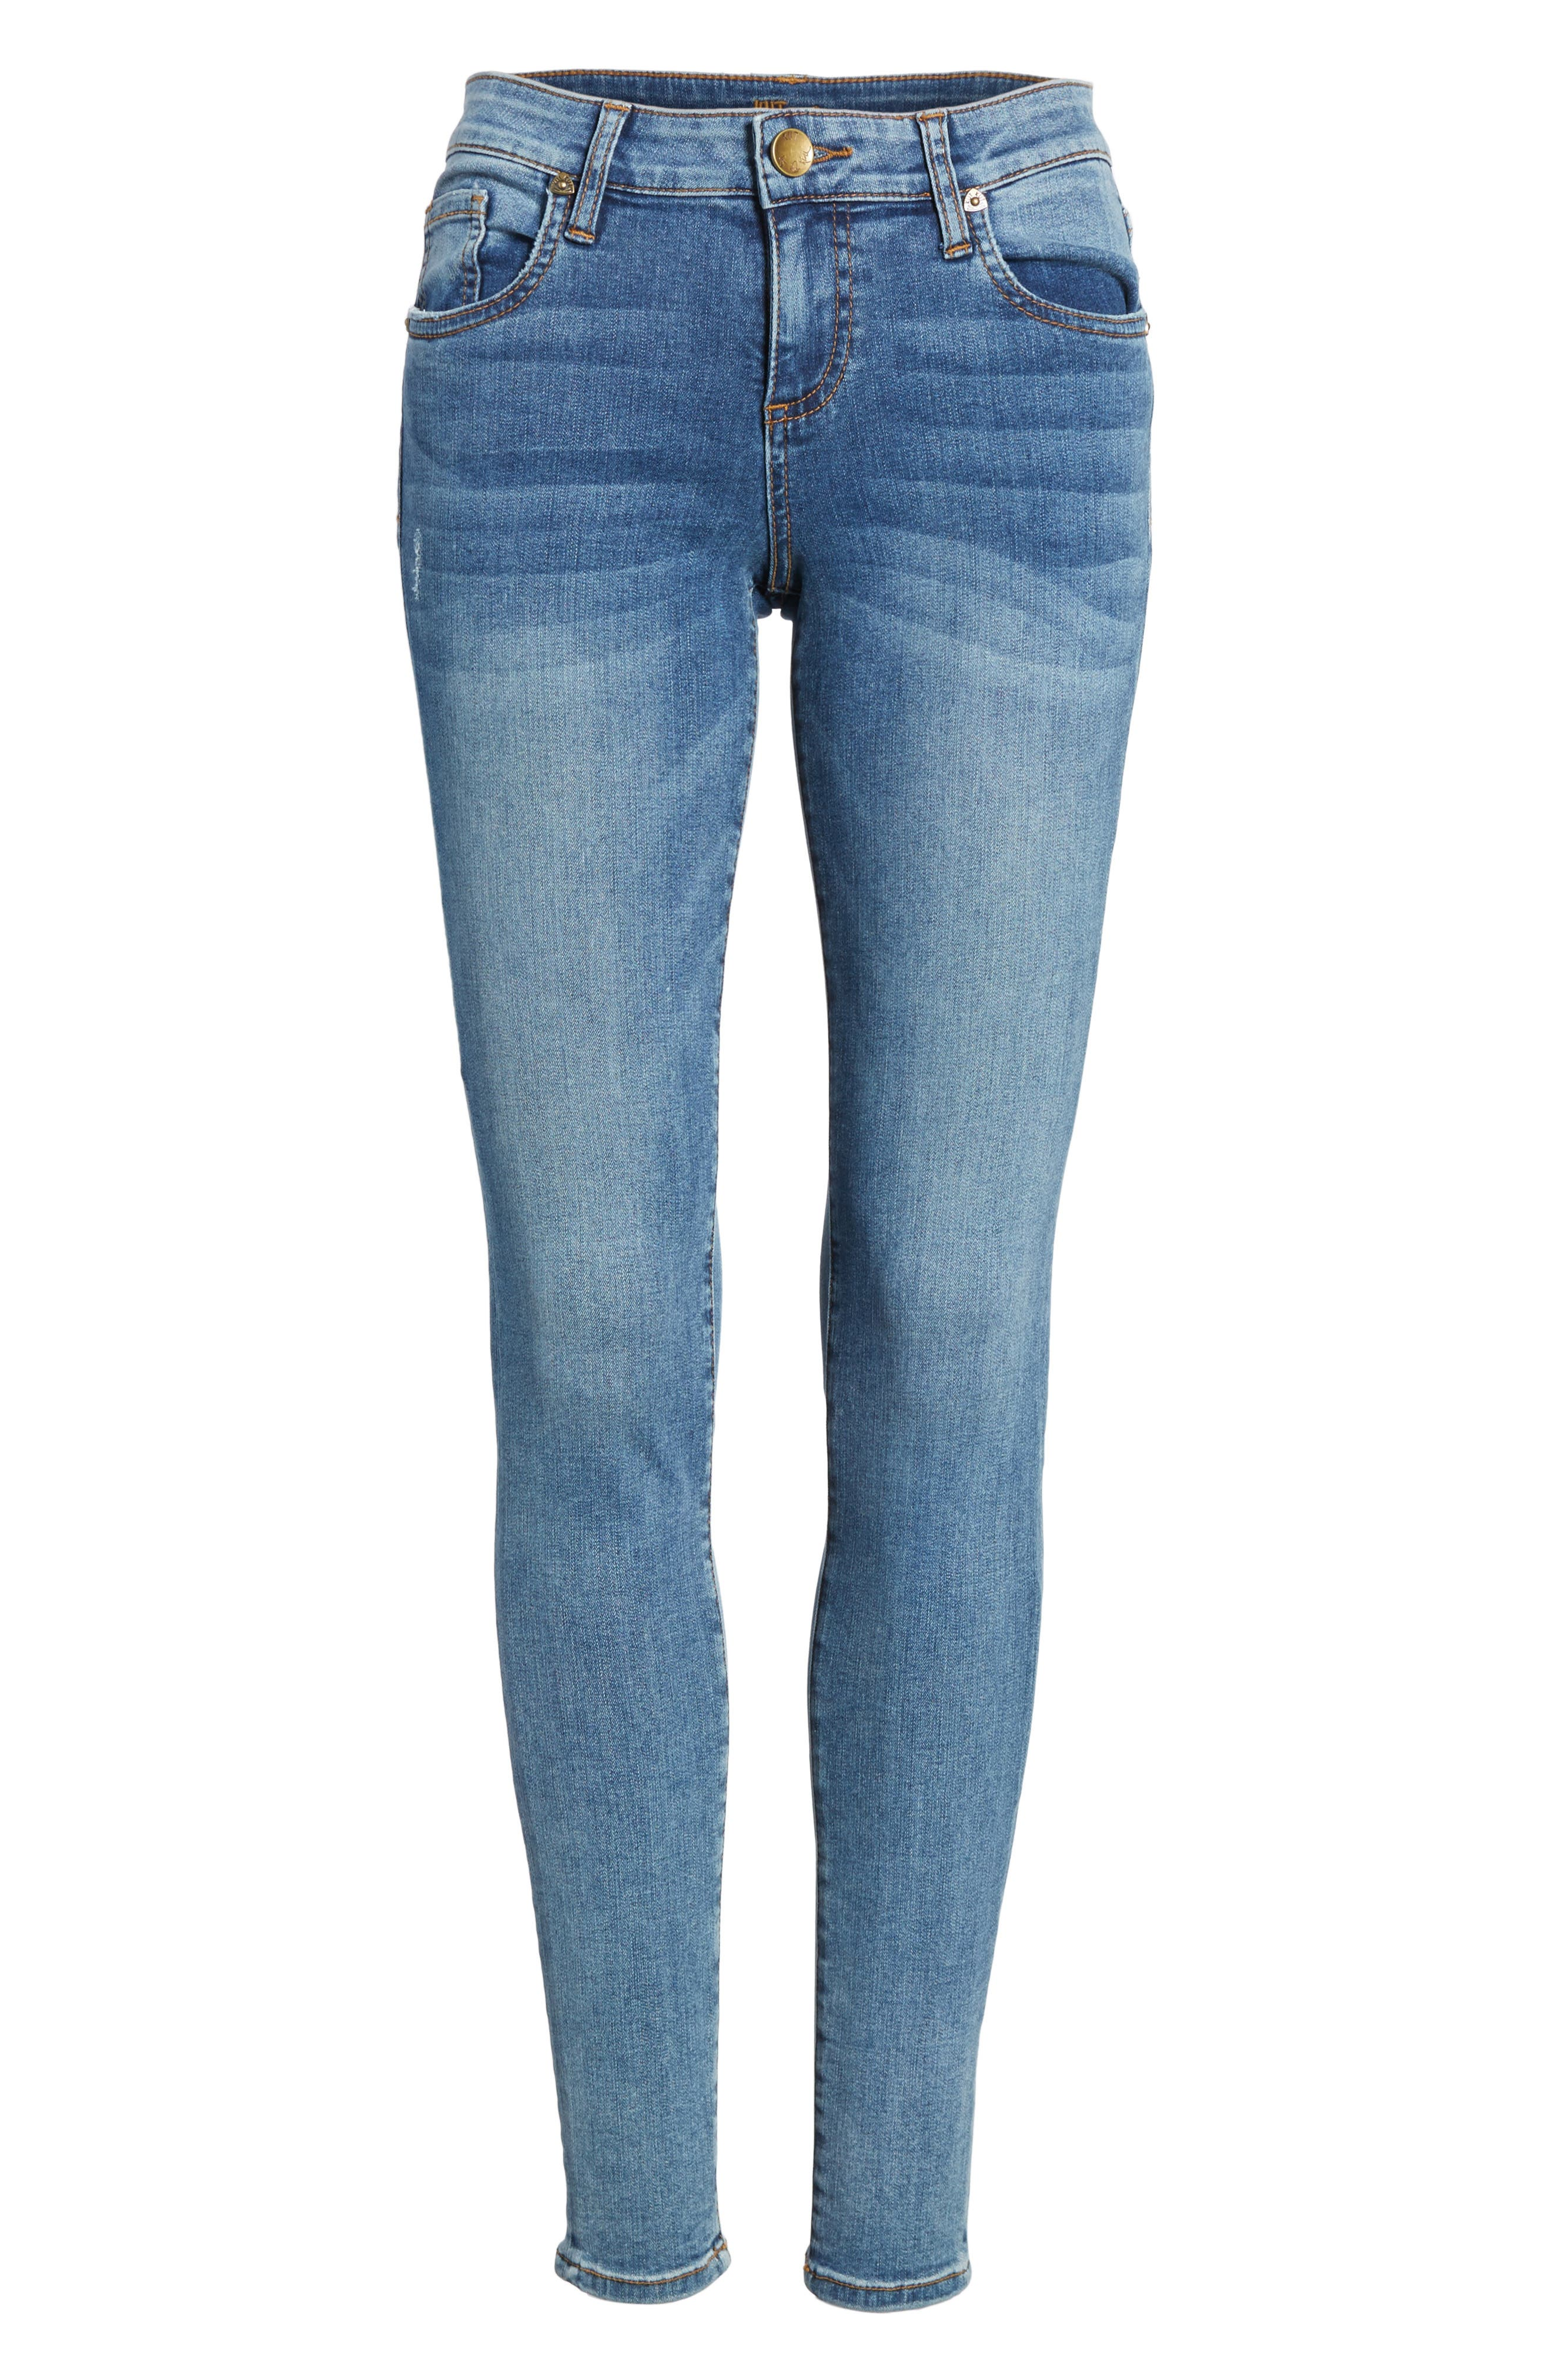 Donna Skinny Jeans,                             Alternate thumbnail 7, color,                             Venturesome